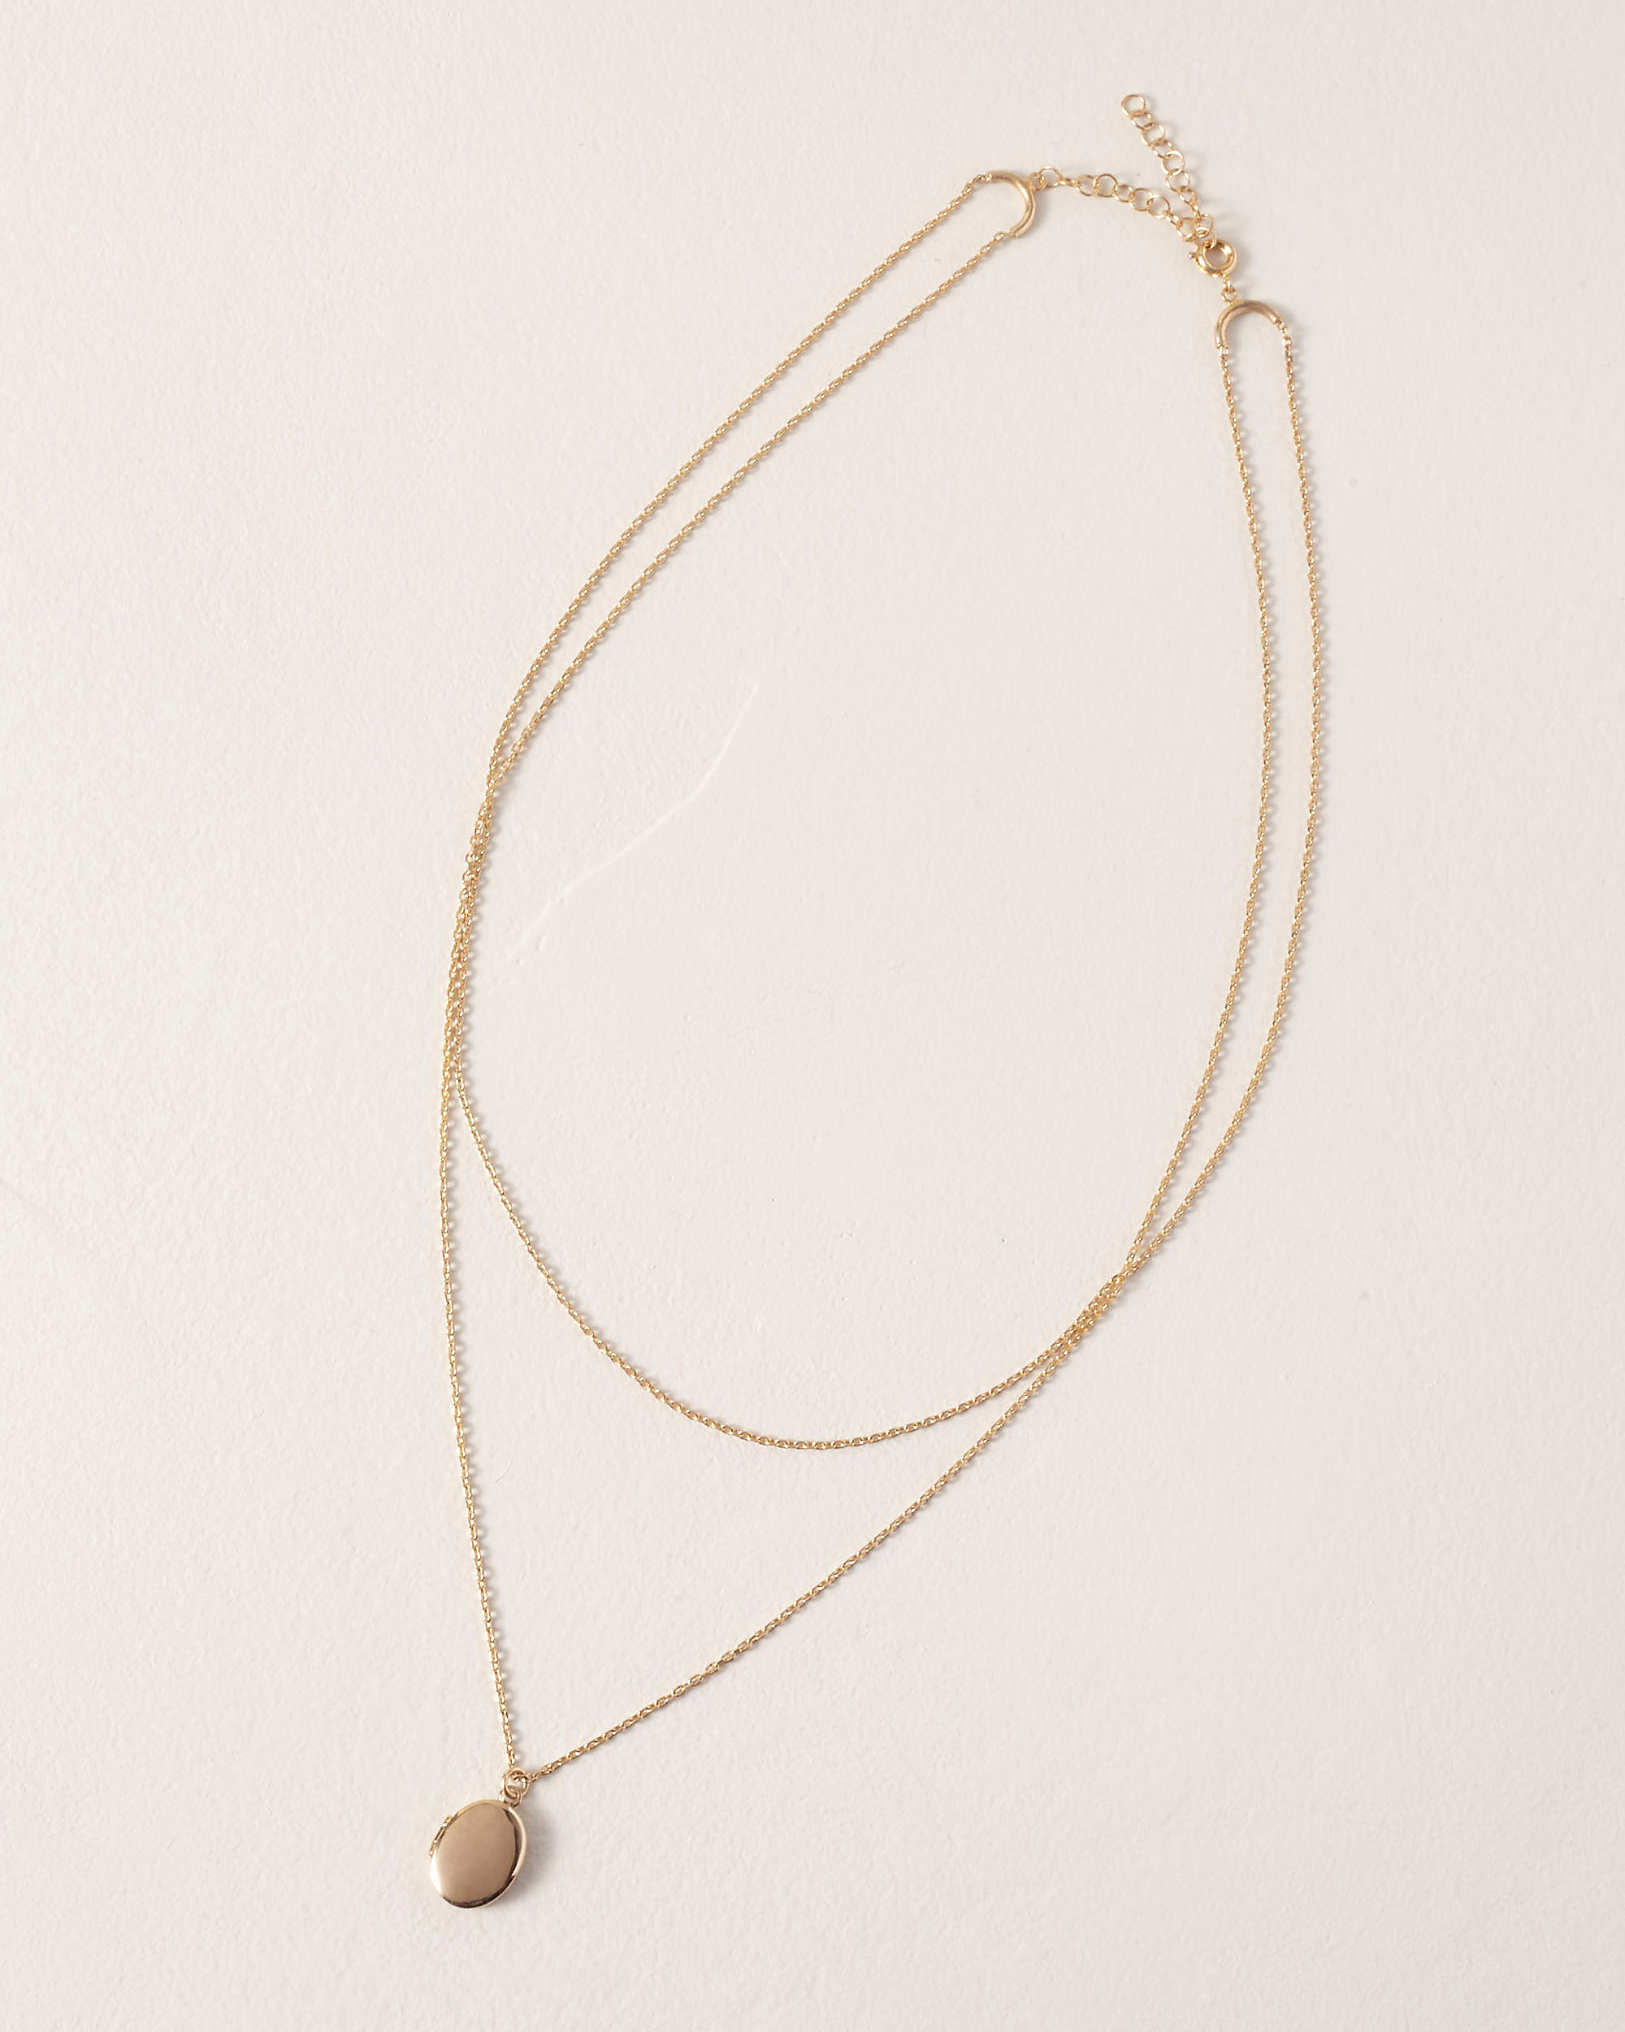 gold-plated locket delicate layered chain necklace